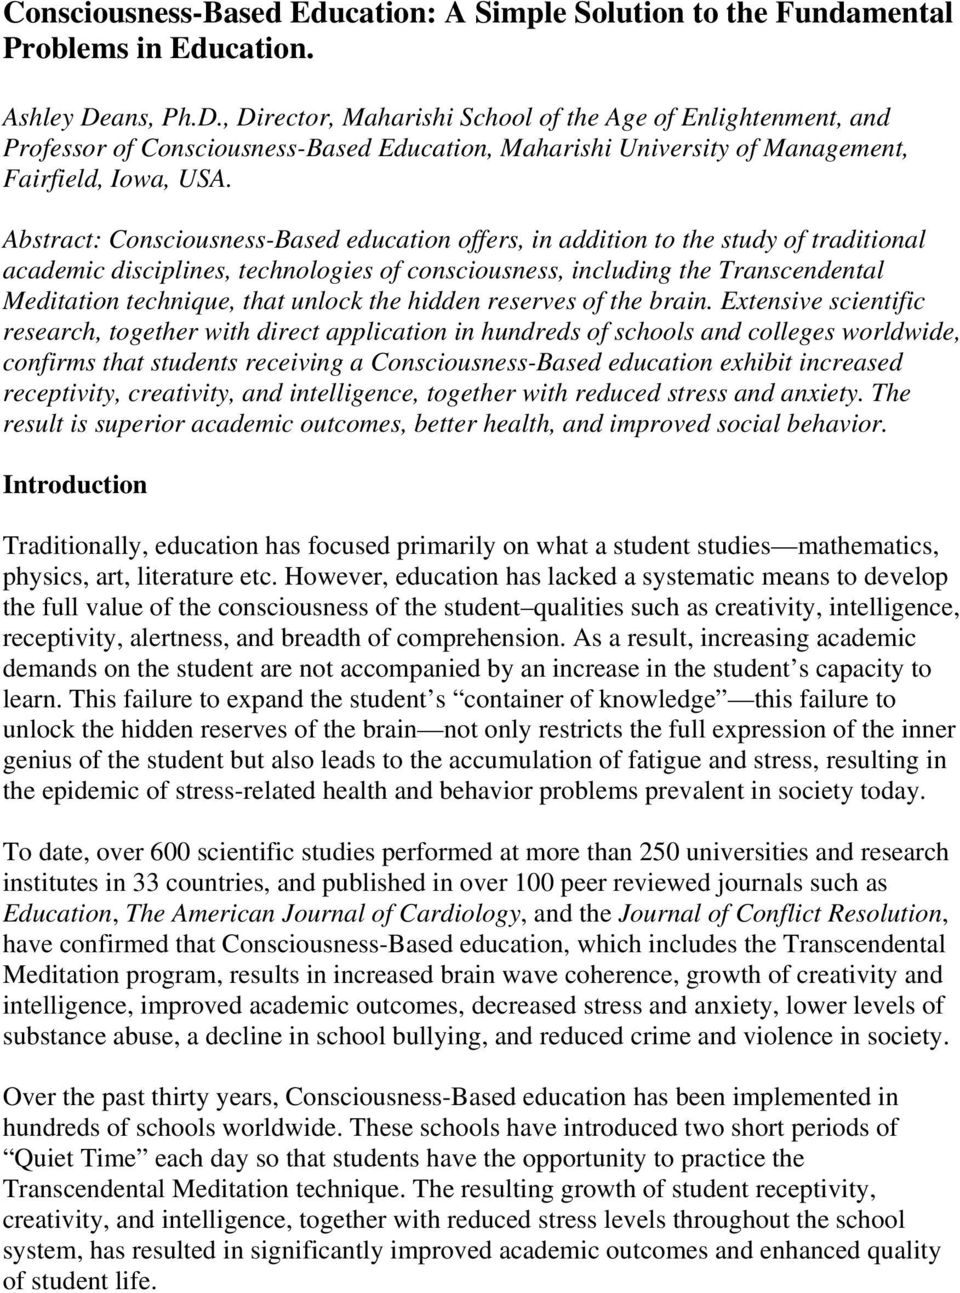 Abstract: Consciousness-Based education offers, in addition to the study of traditional academic disciplines, technologies of consciousness, including the Transcendental Meditation technique, that